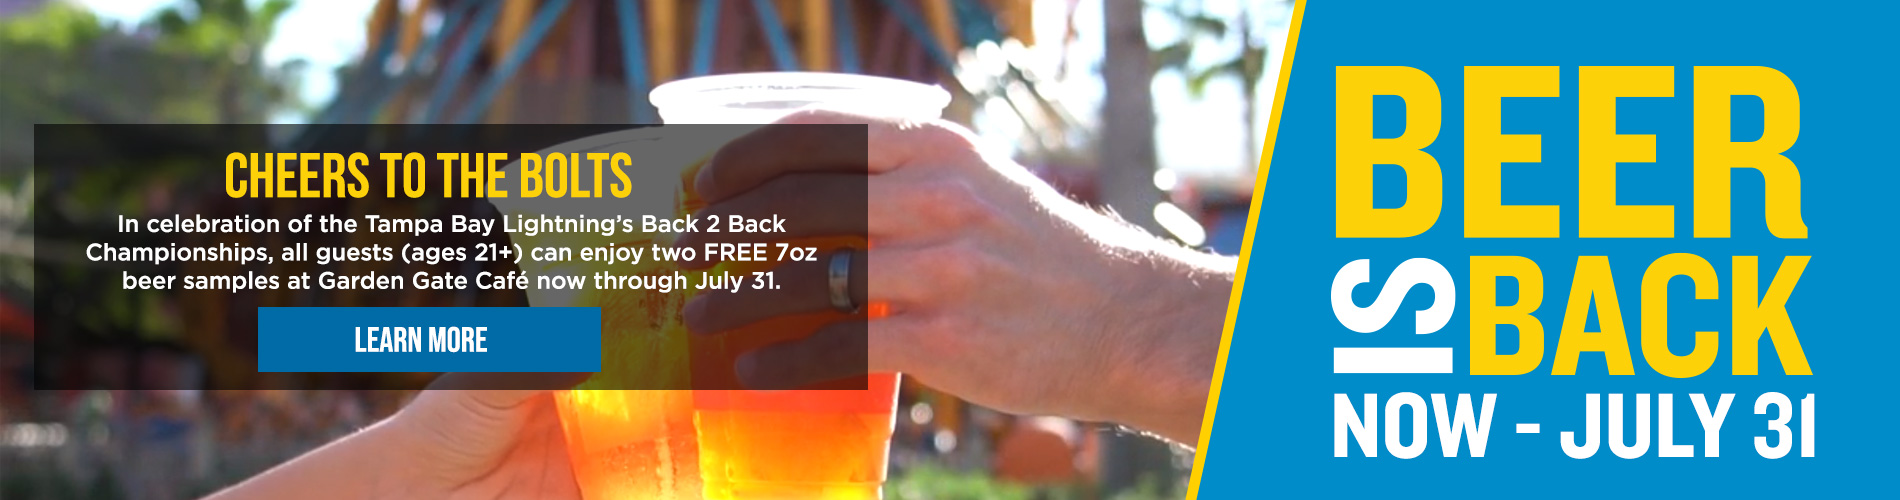 Cheers to Free Beer! For the Rest of July, all guests can enjoy twofree 7oz beer samples once a day at Garden Gate Café